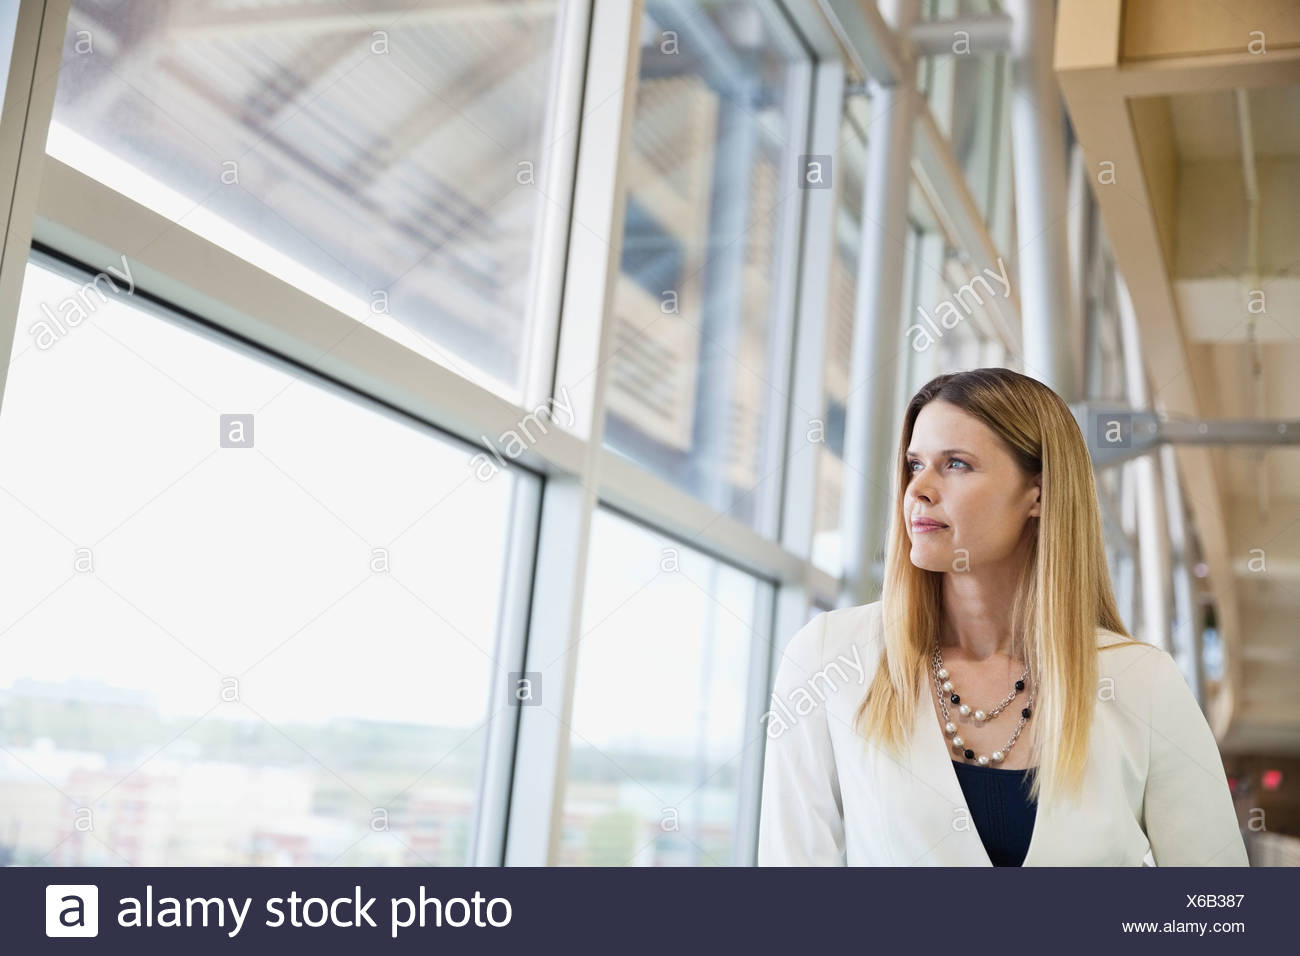 Thoughtful businesswoman looking out window Stock Photo